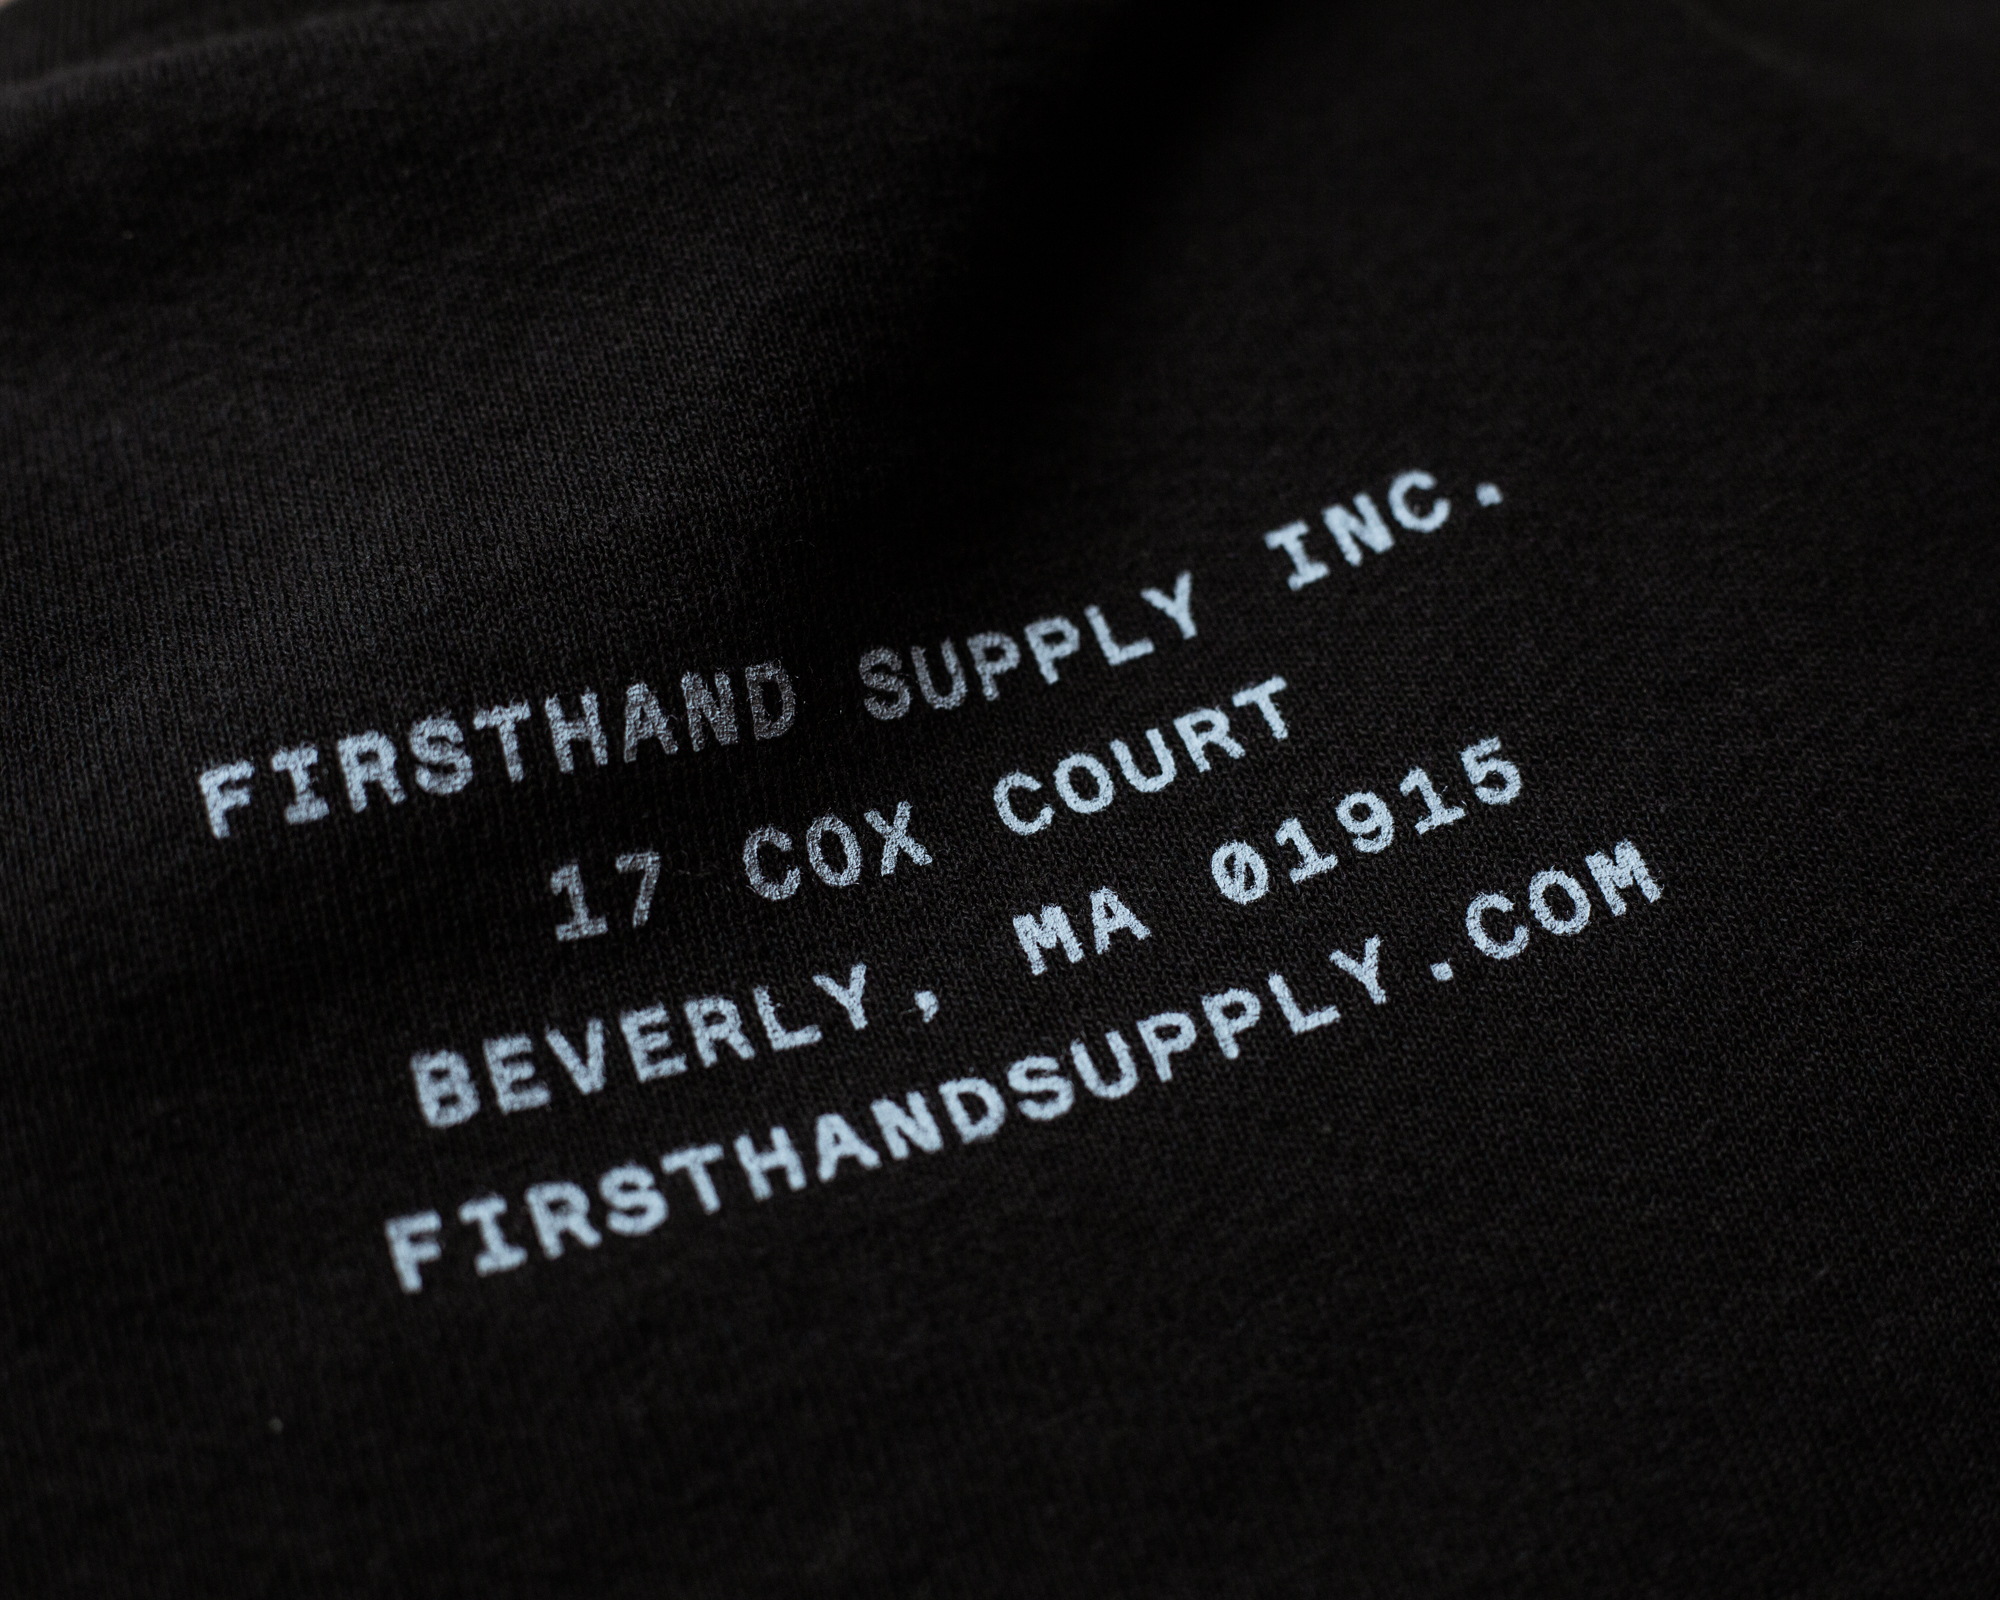 Firsthand - Apparel, Typography